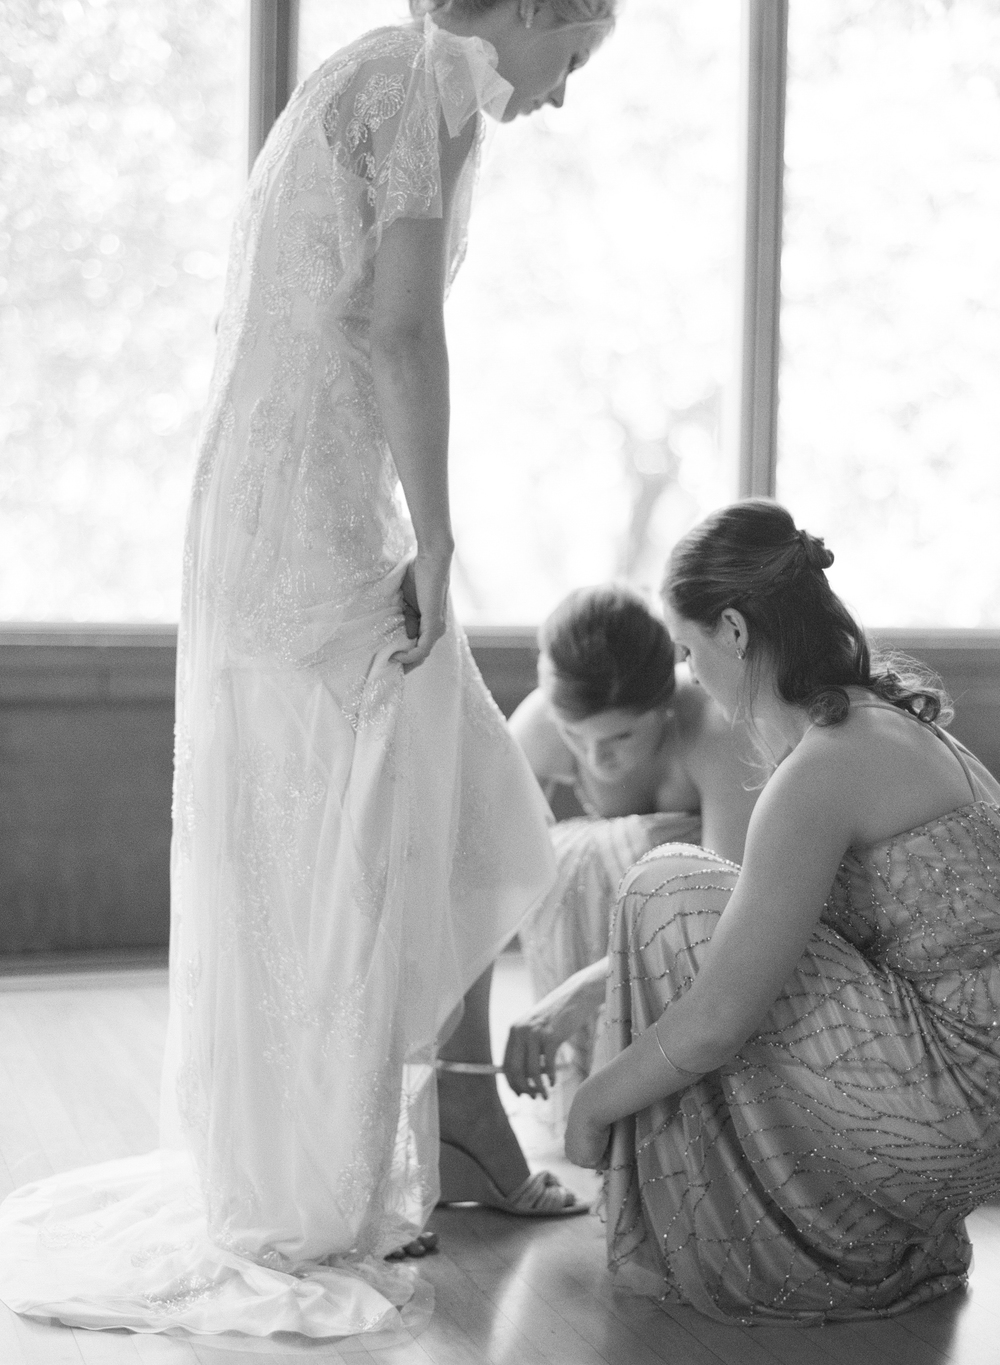 Sylvie-Gil-film-destination-photography-Kunde-winery-Napa-Valley-elegant-shabby-chic-bride-getting-ready-bridesmaids-shoes